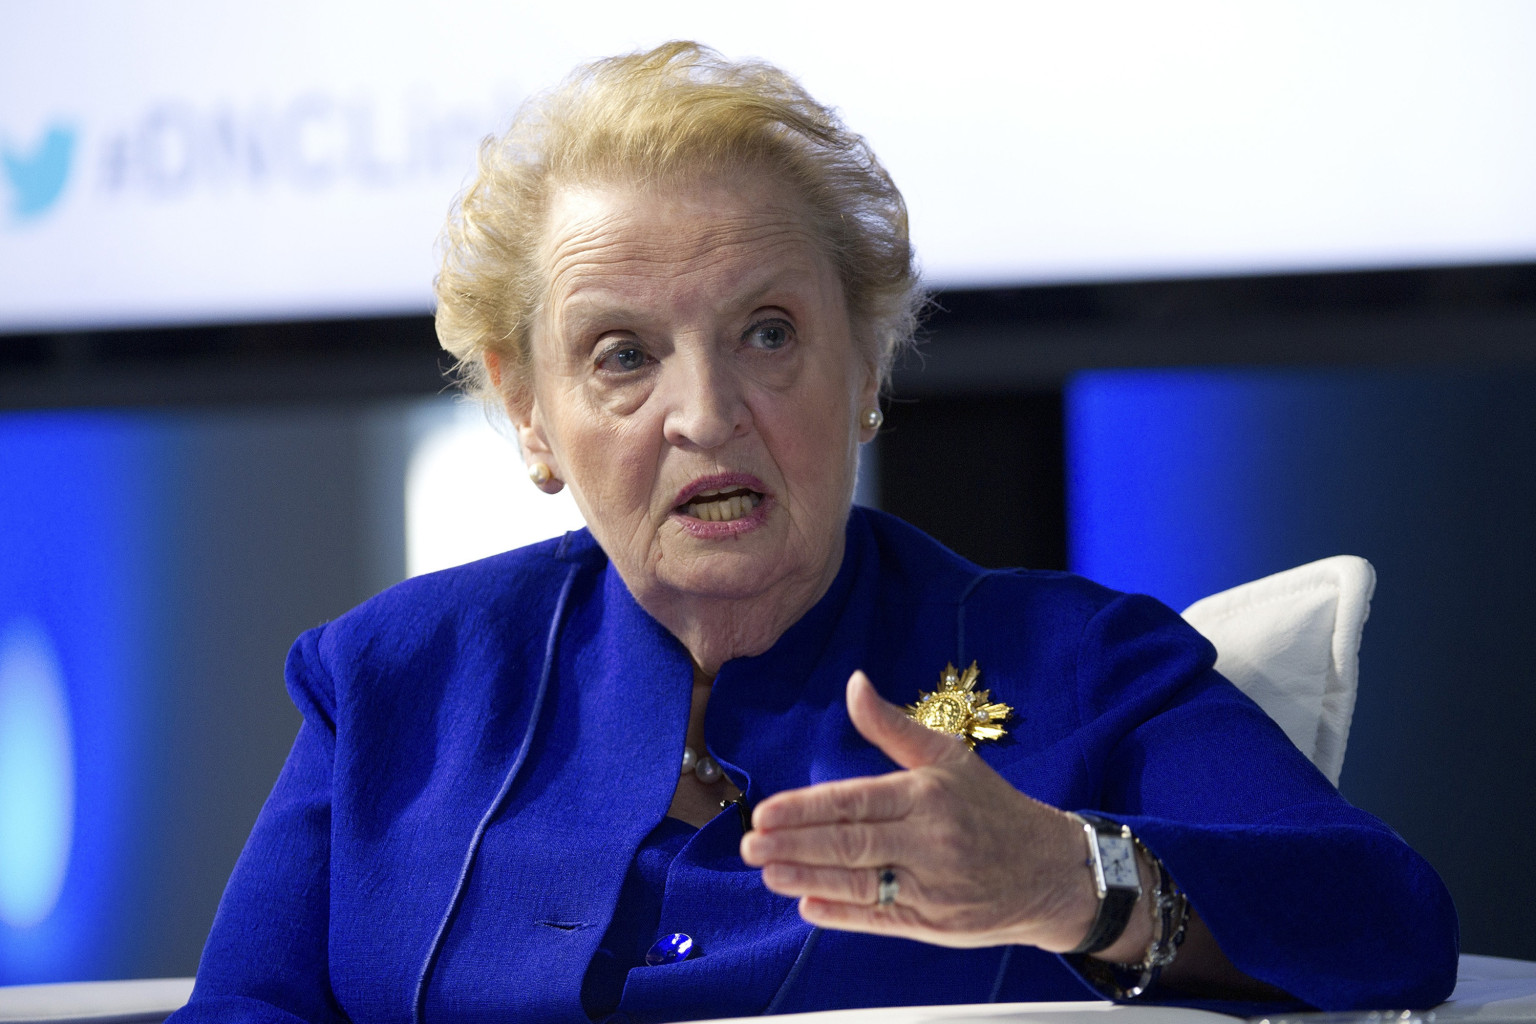 Madeleine Albright: The things that are happening are Pictures of madeleine albright